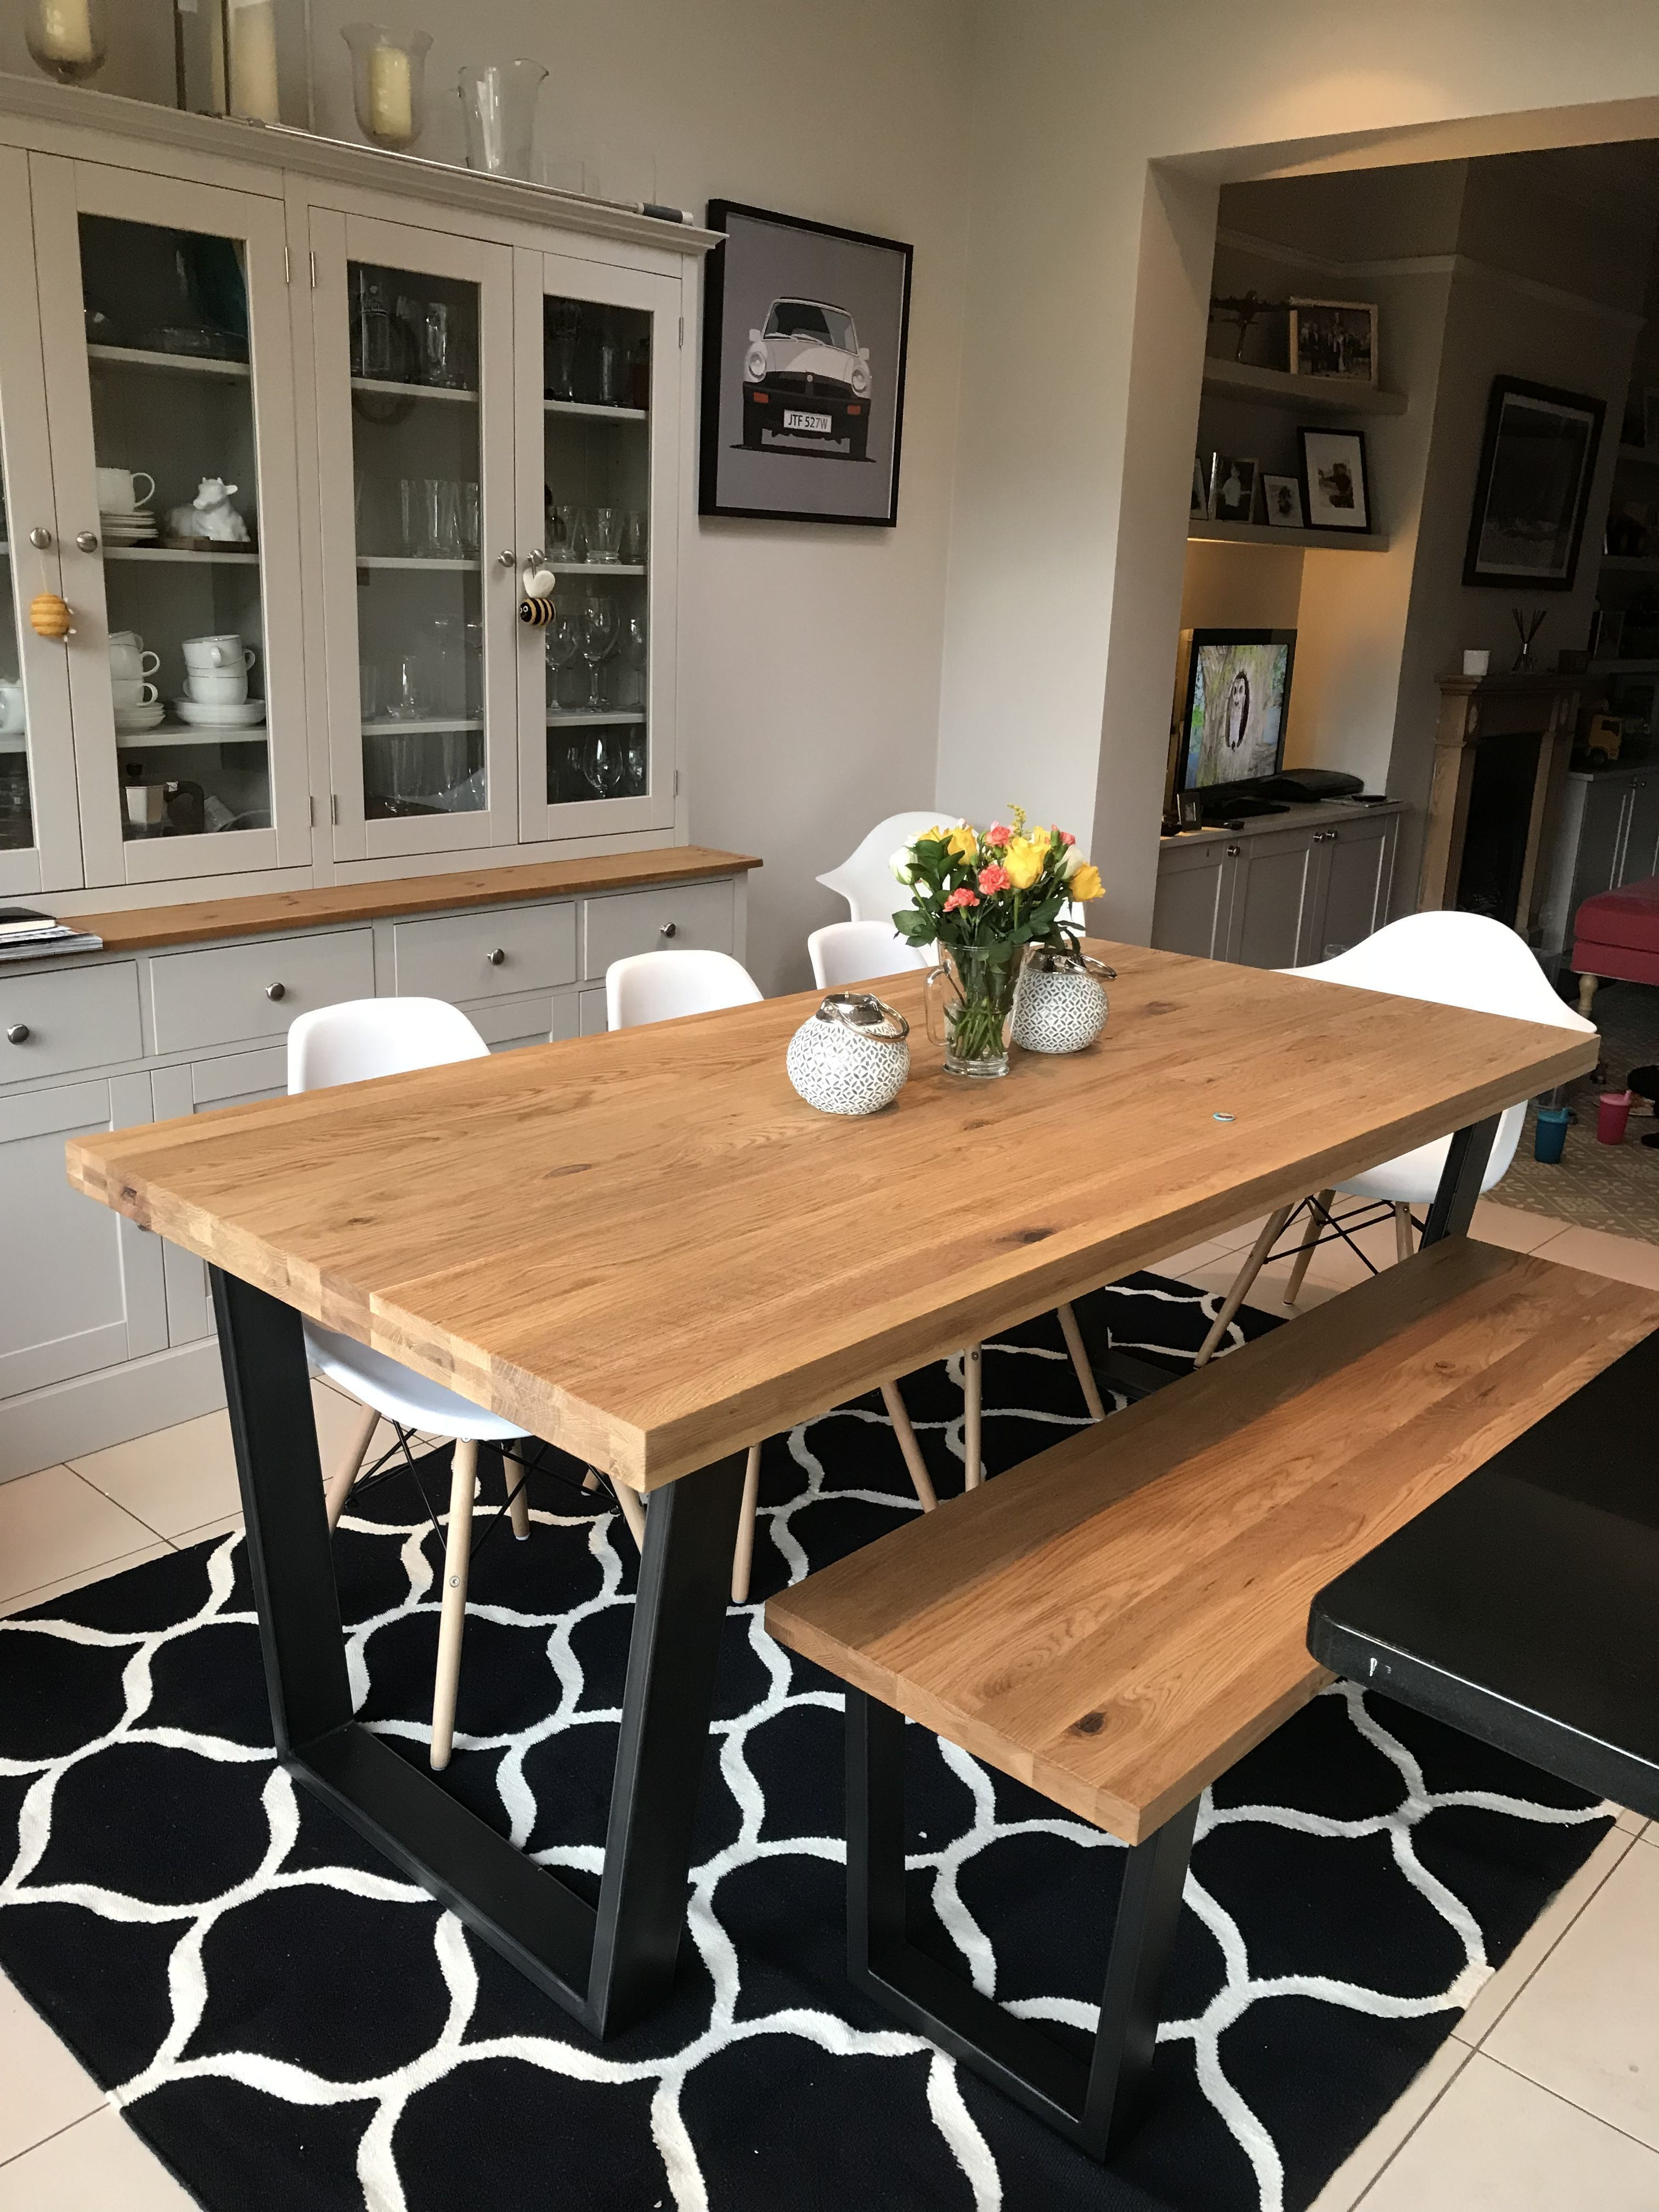 John Lewis Kitchen Table And Chair Setsjohn Lewis Kitchen Table And Chair Sets Ever End Up In Th Dining Table With Bench Dining Room Design Dining Room Table